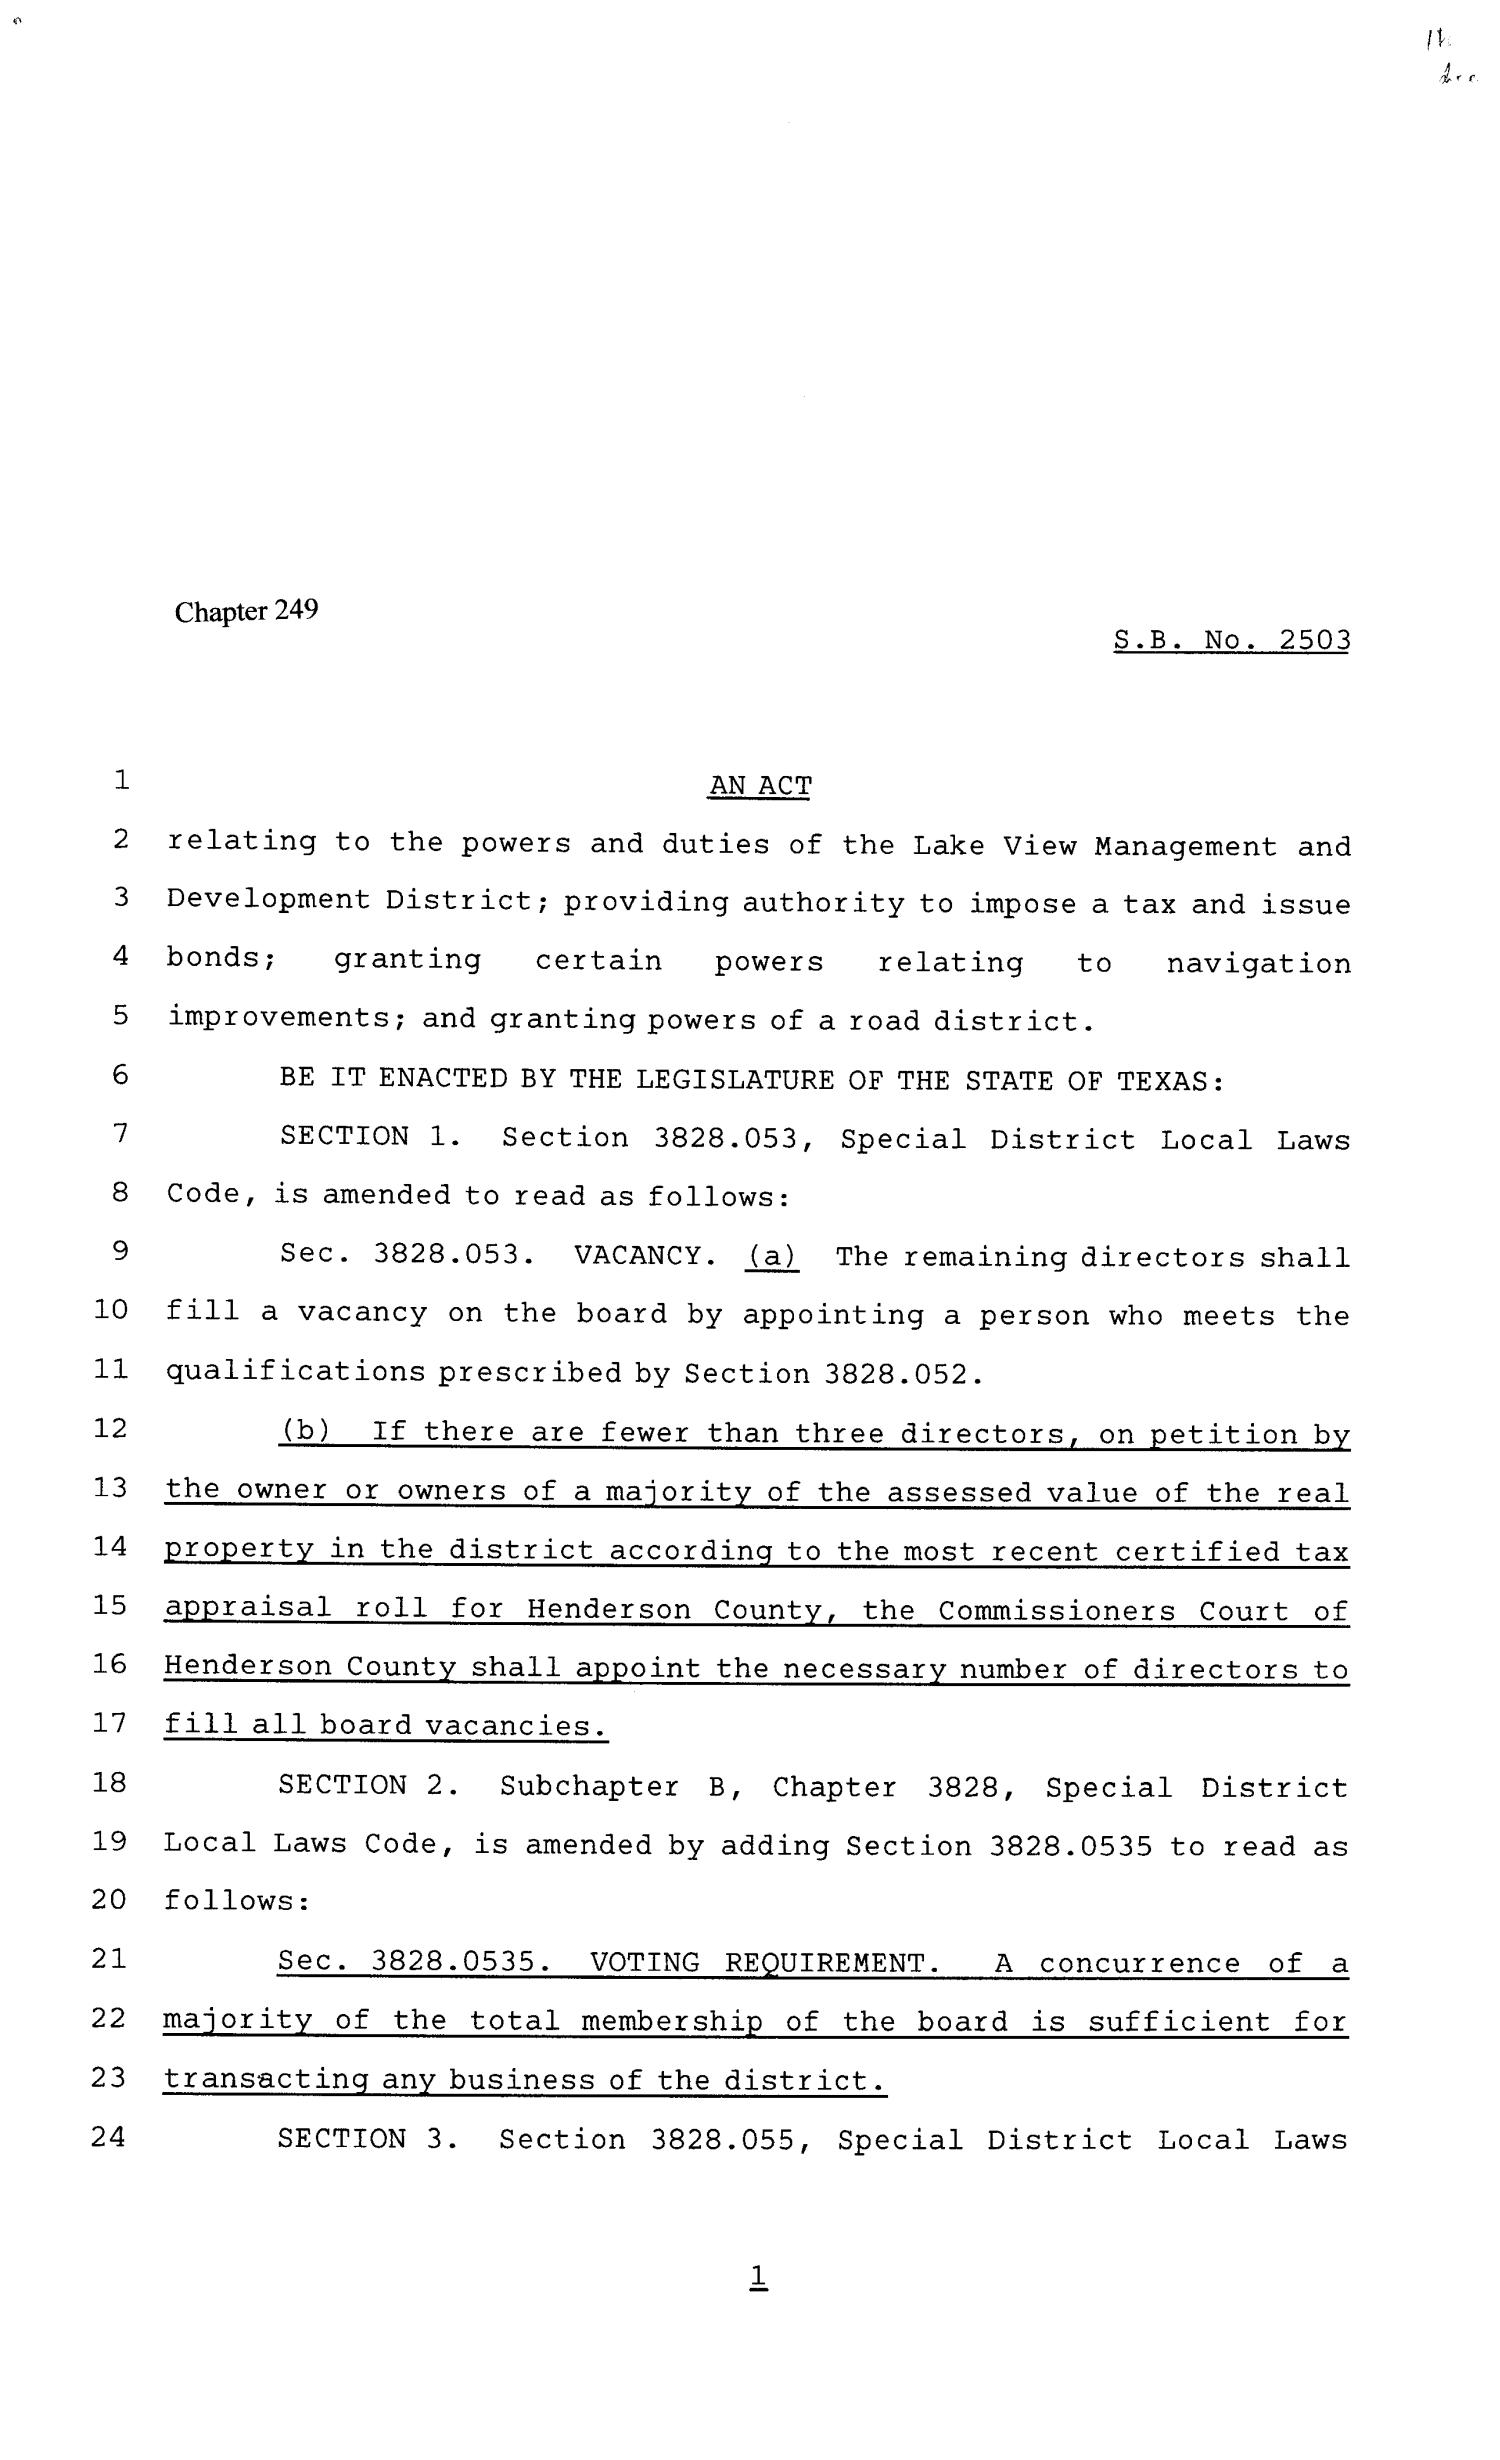 81st Texas Legislature, Senate Bill 2503, Chapter 249                                                                                                      [Sequence #]: 1 of 9